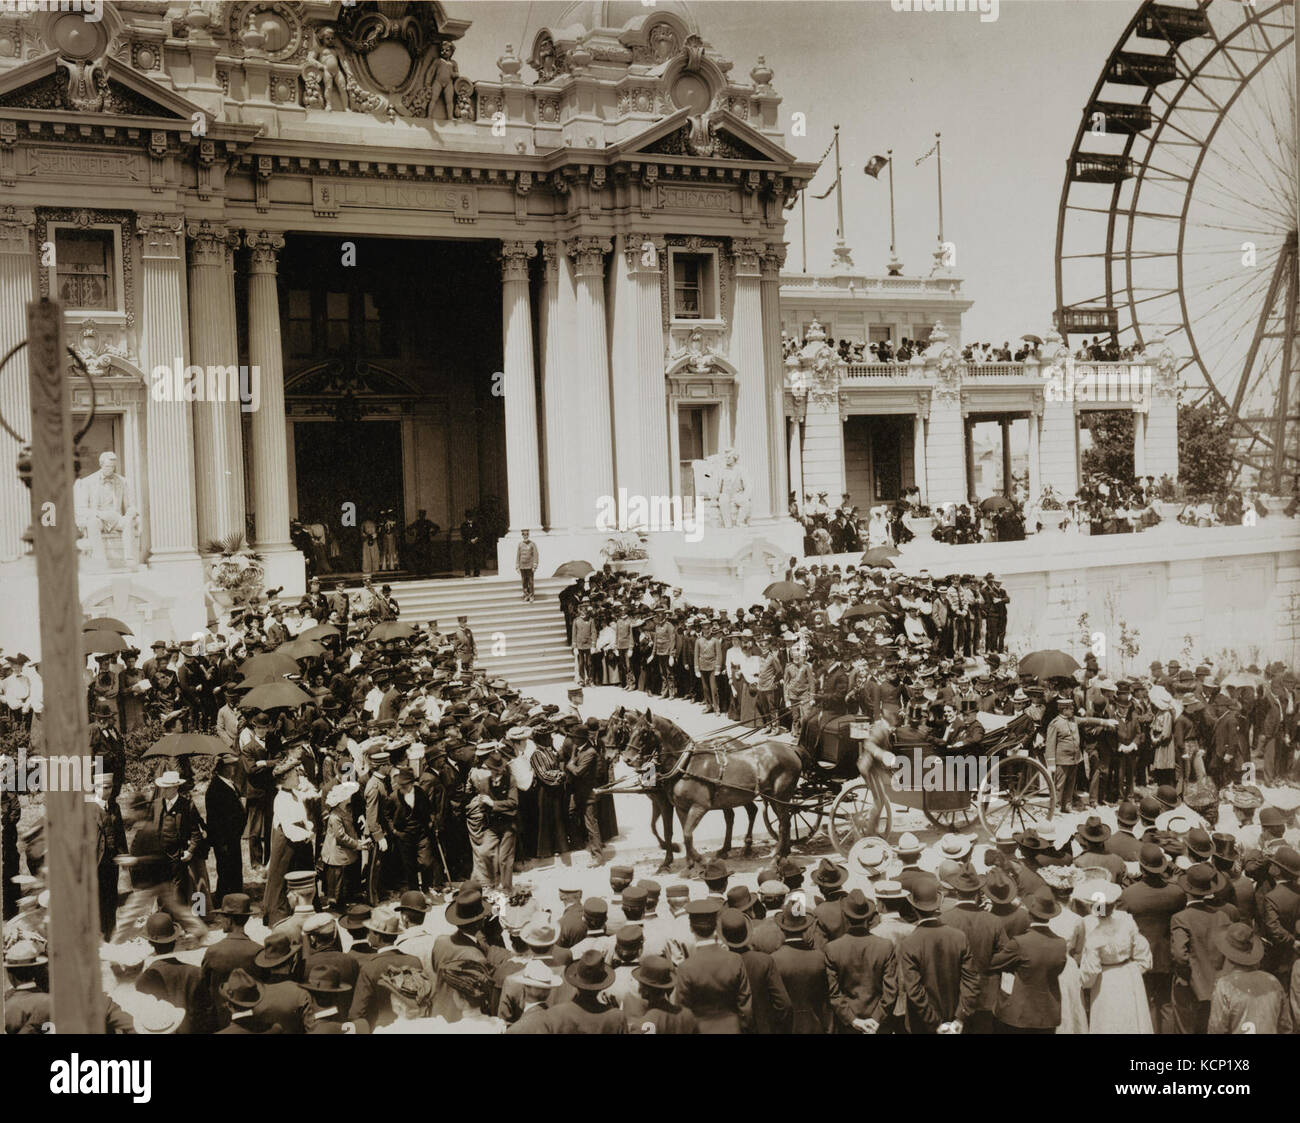 Dedication of the Illinois State Building at the 1904 World's Fair - Stock Image